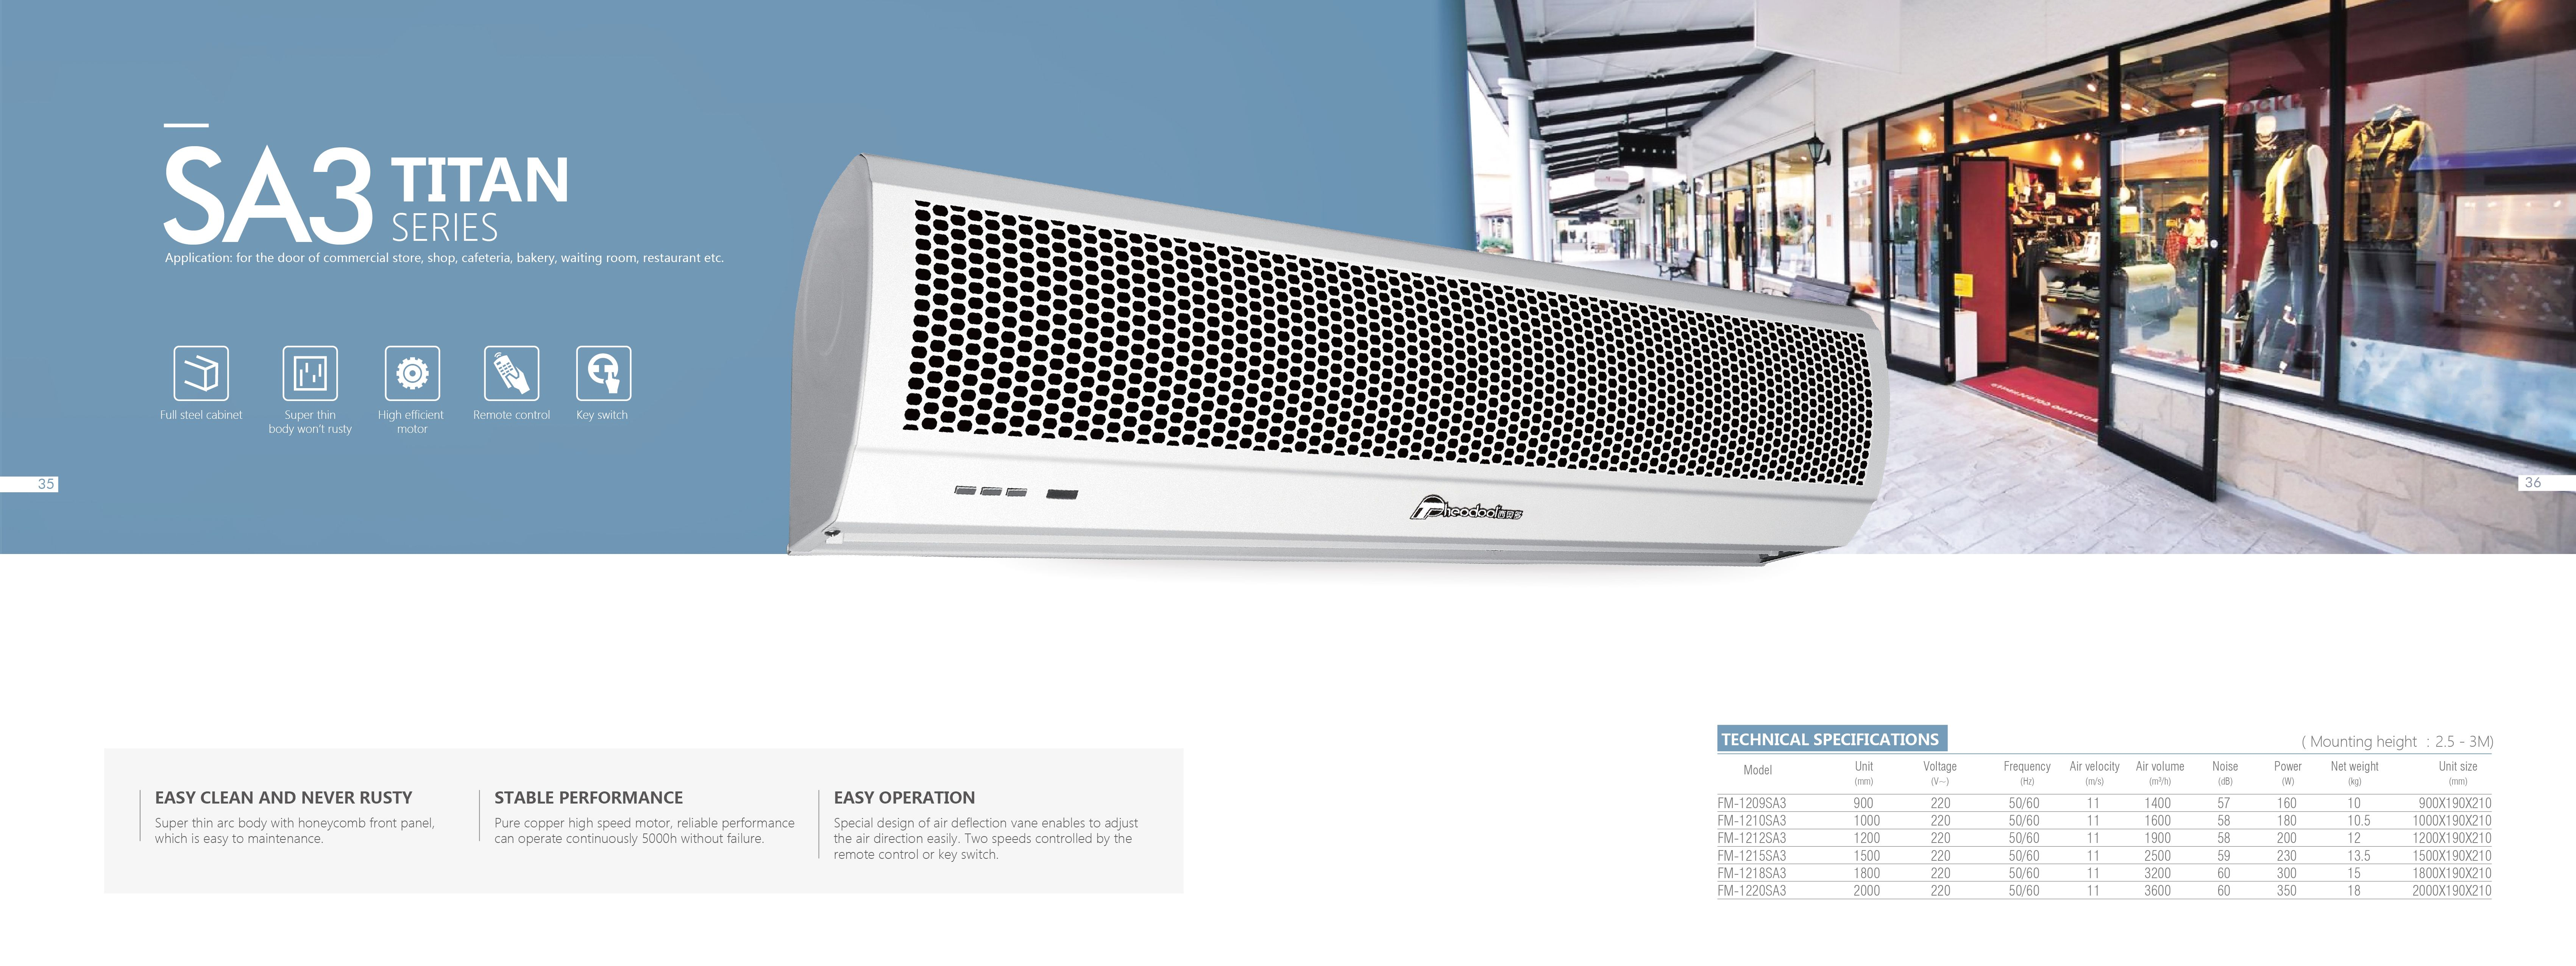 wall mounted compact design titan 3 residential air curtain with metal cover good partner of air conditioner pls feel f compact design design air conditioner